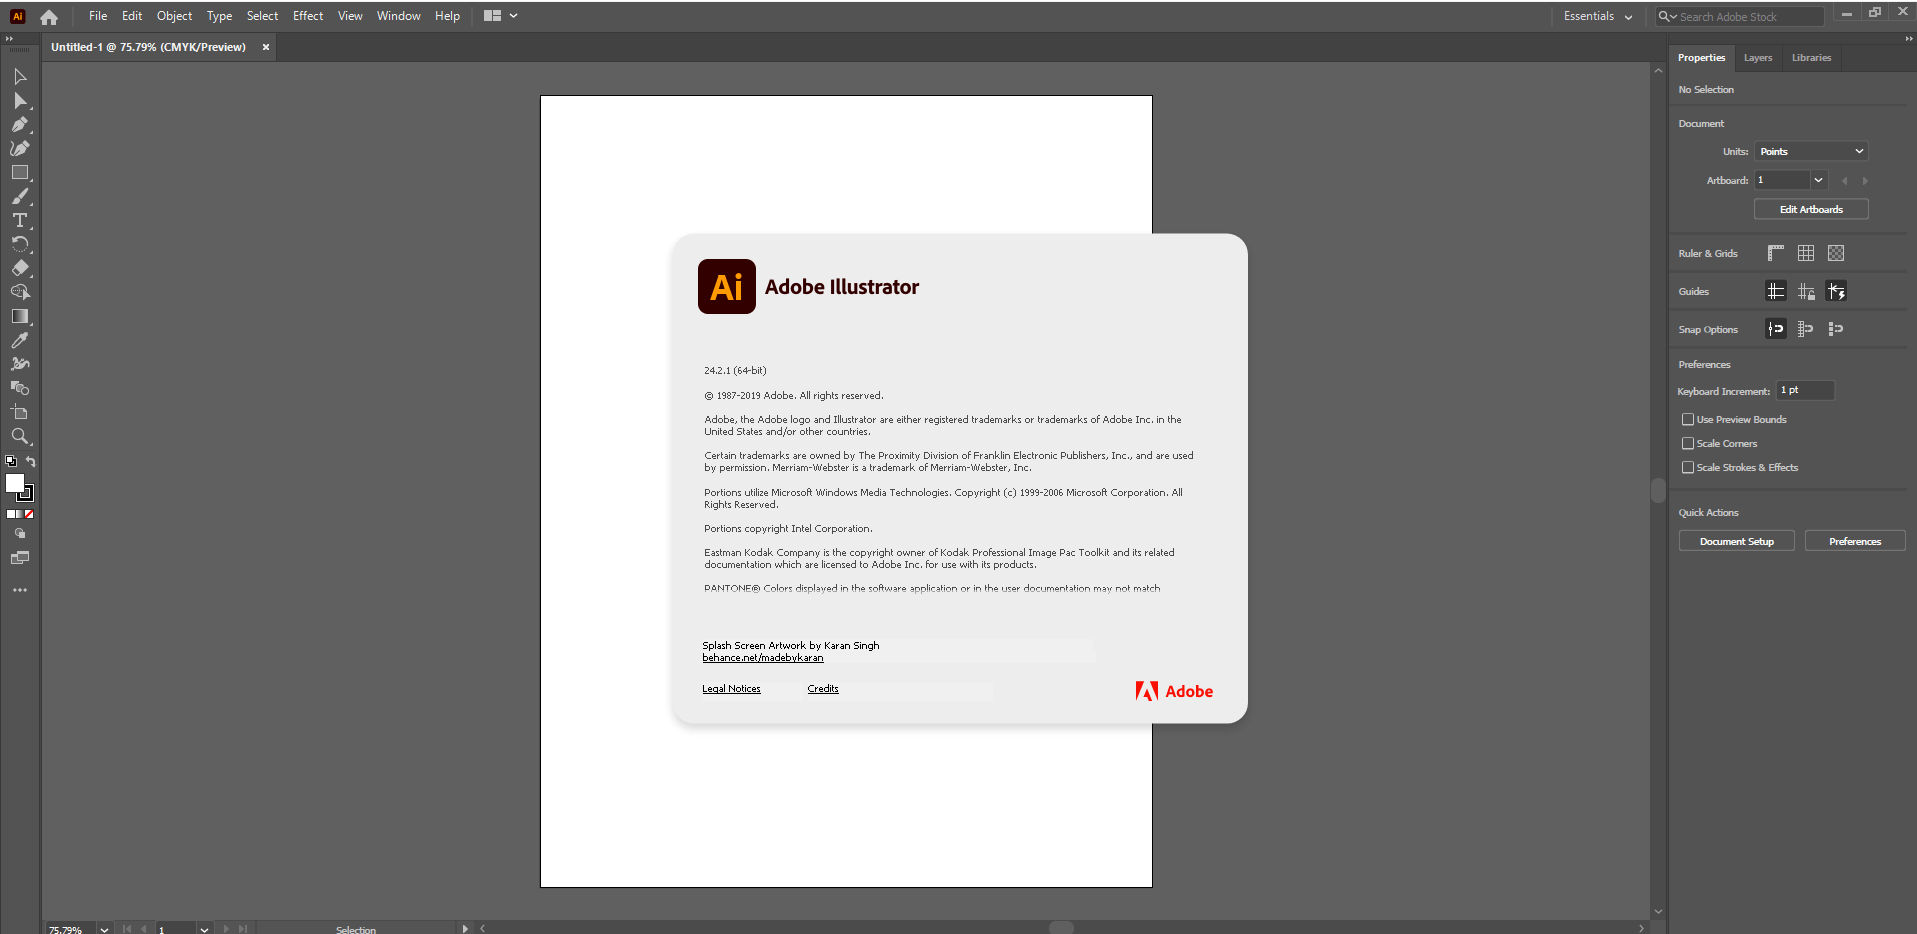 Adobe Illustrator Crack Key